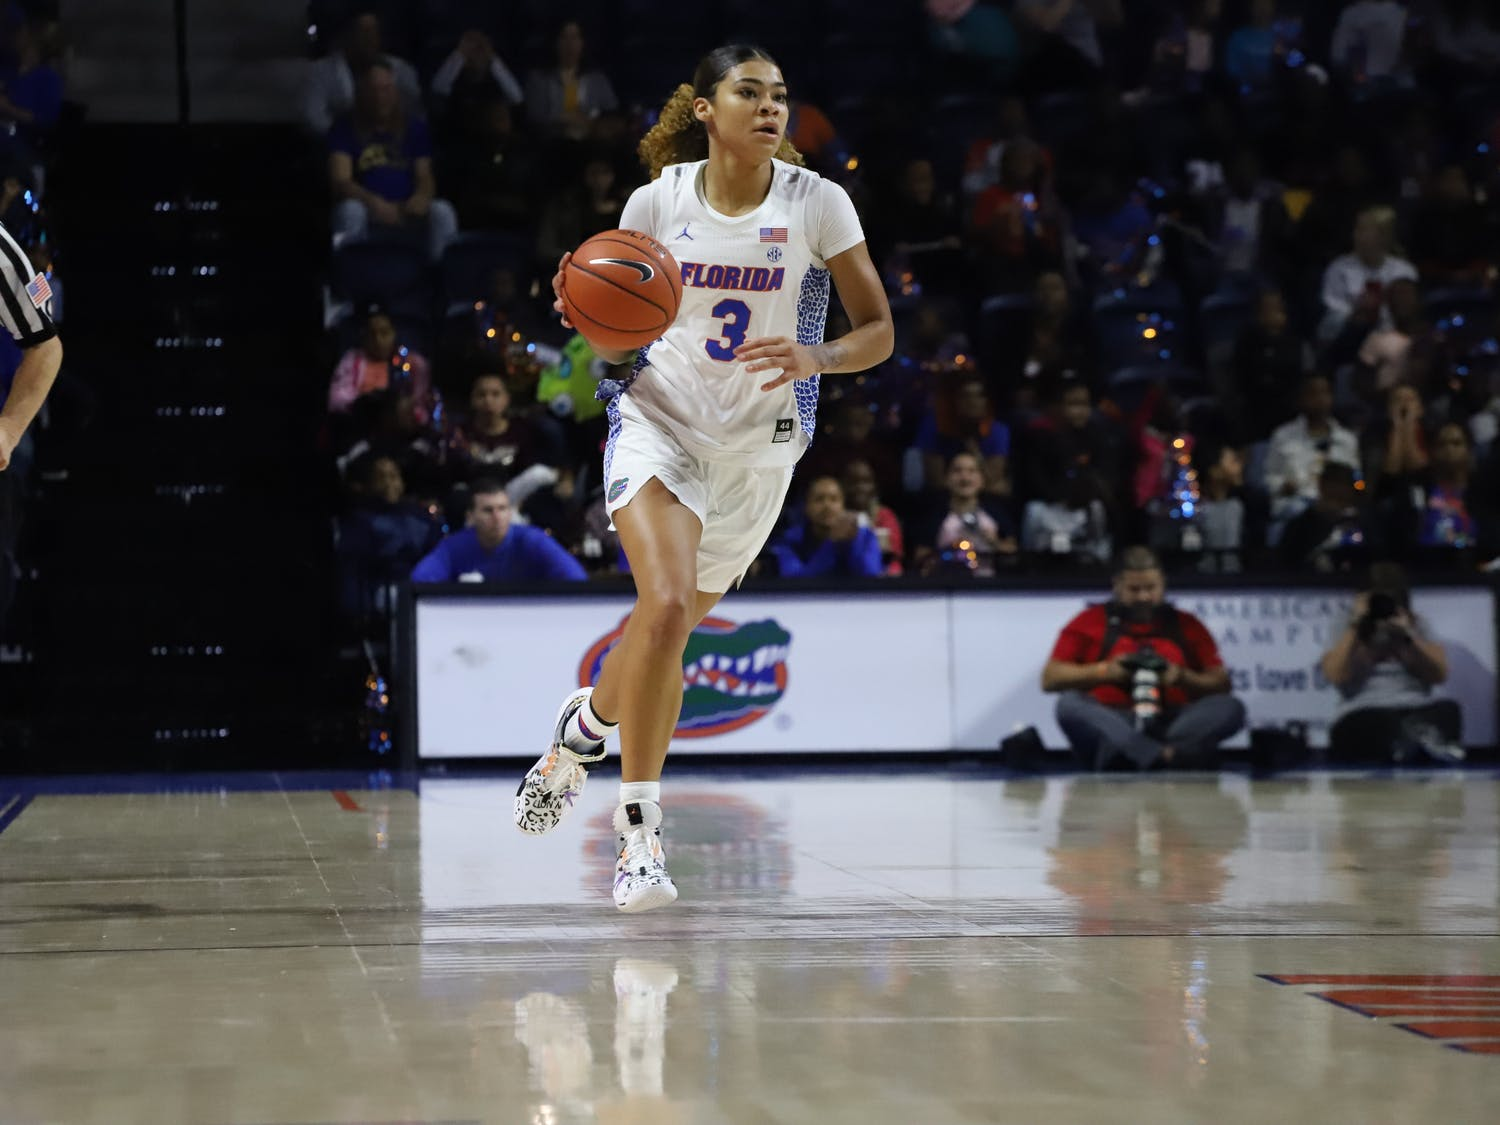 Lavender Briggs was the team's second-leading scorer with 15 points.